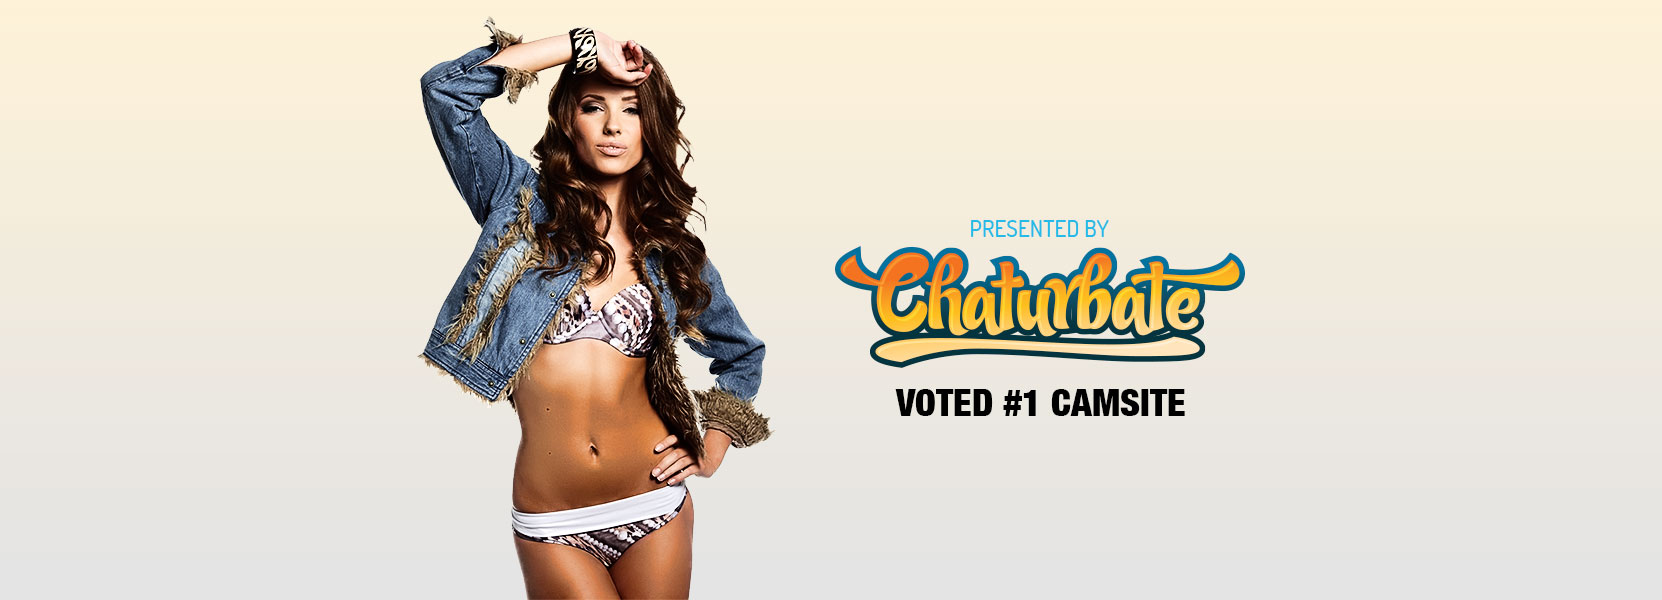 inked awards presented by Chaturbate